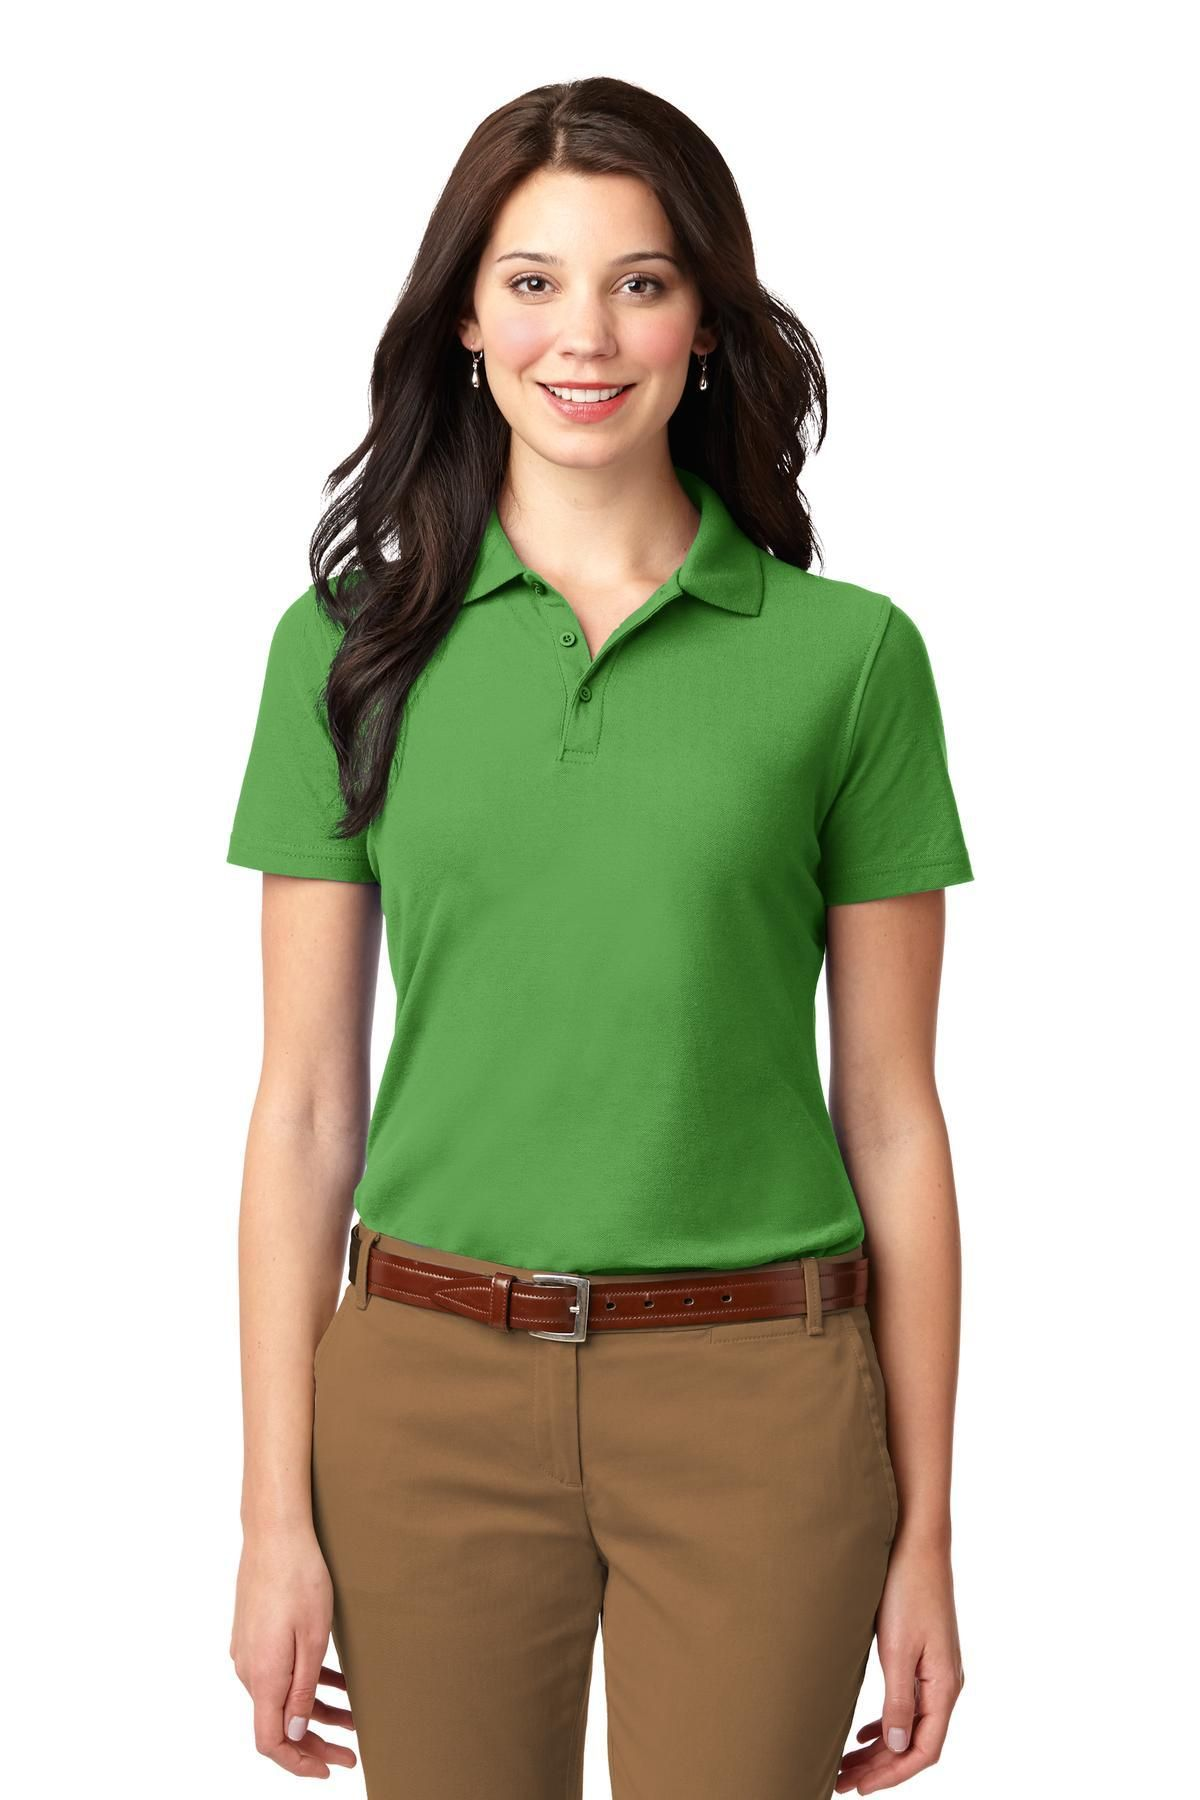 12d300c4ea2 Port Authority Ladies Stain-Resistant Polo L510 Vine Green in 2019 ...